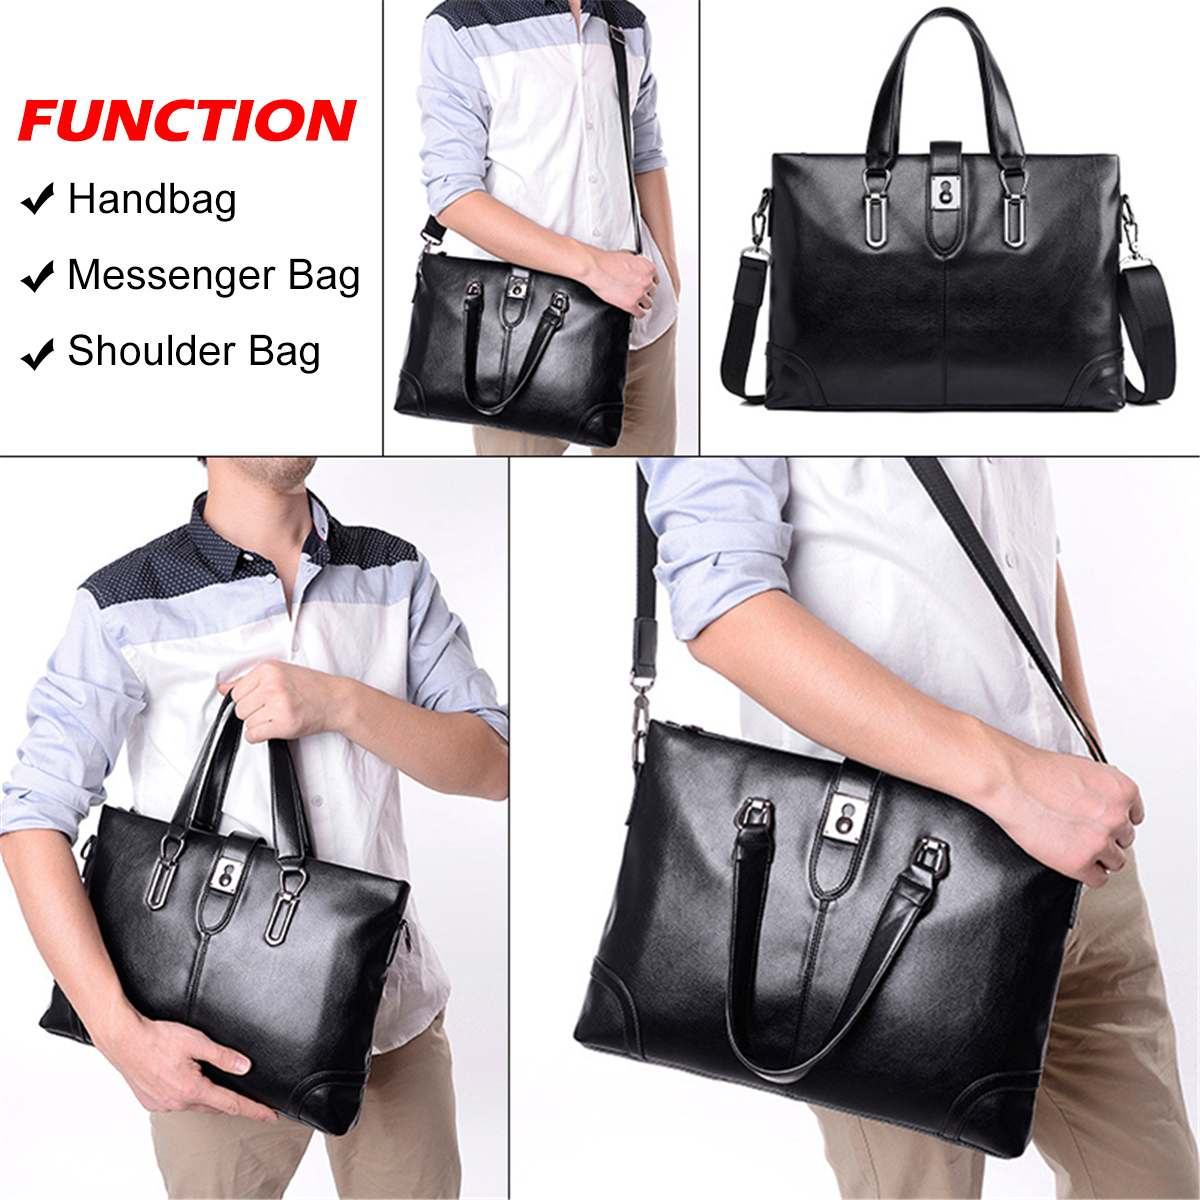 Retro Men PU Leather Black Briefcase Business Handbags Messenger Bags  Large Capacity Male Vintage Shoulder Bag For Laptop